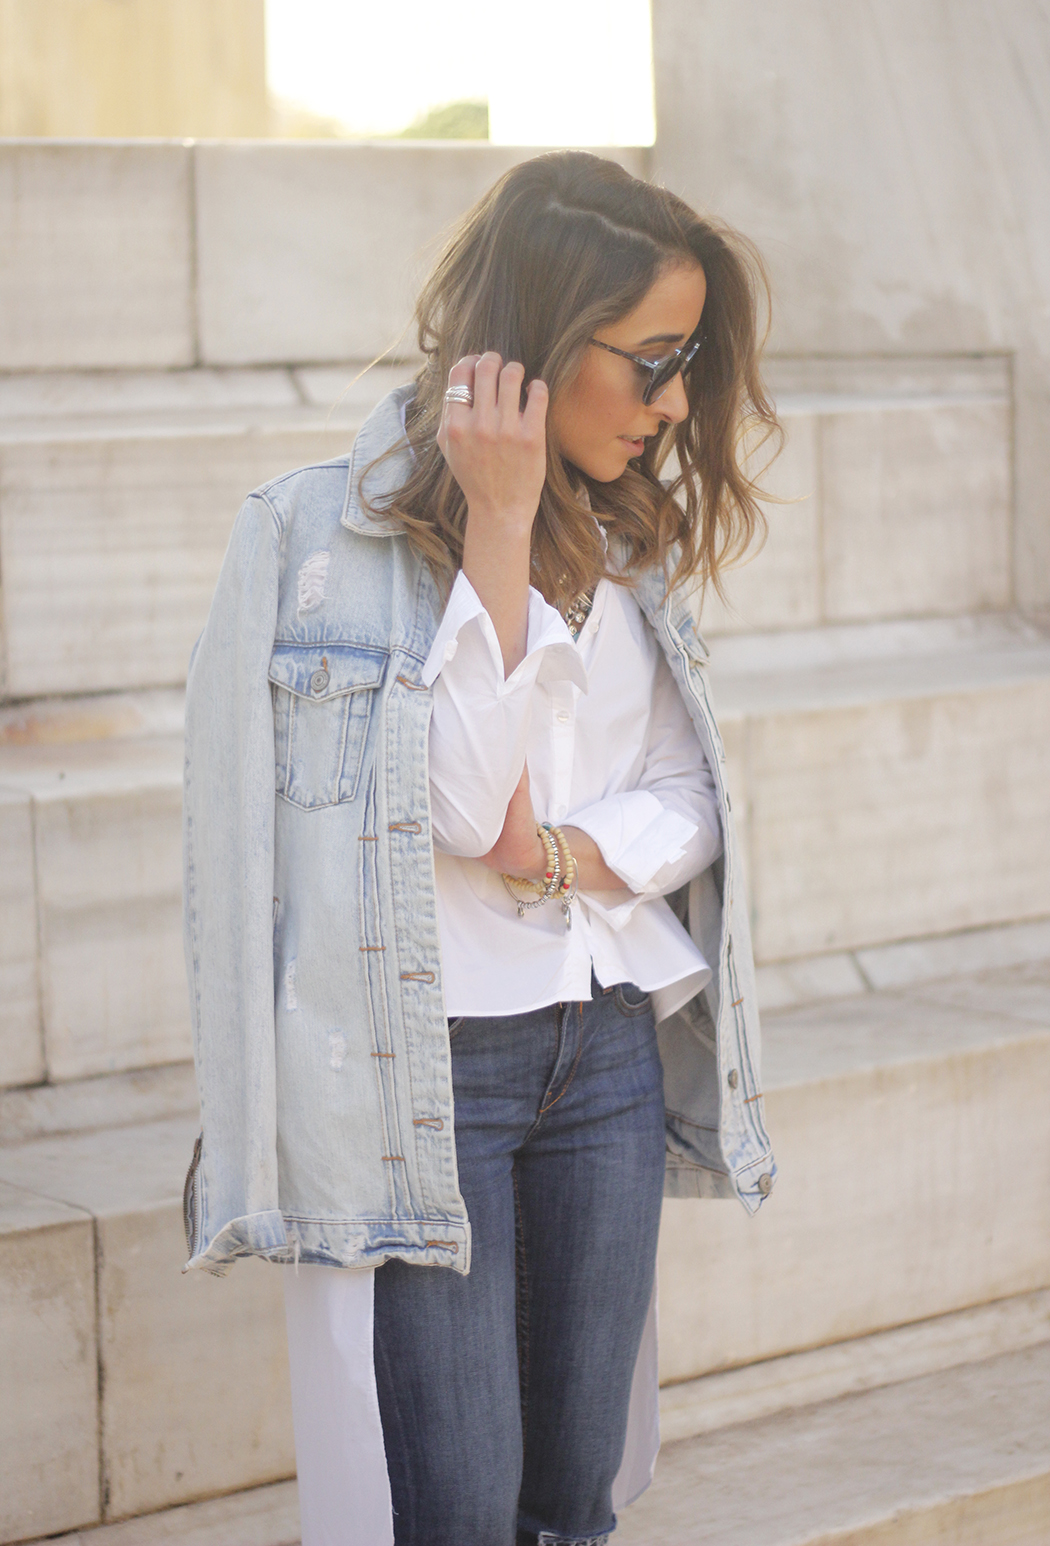 Denim Jacket Jeans White Shirt Black Heels outfit07